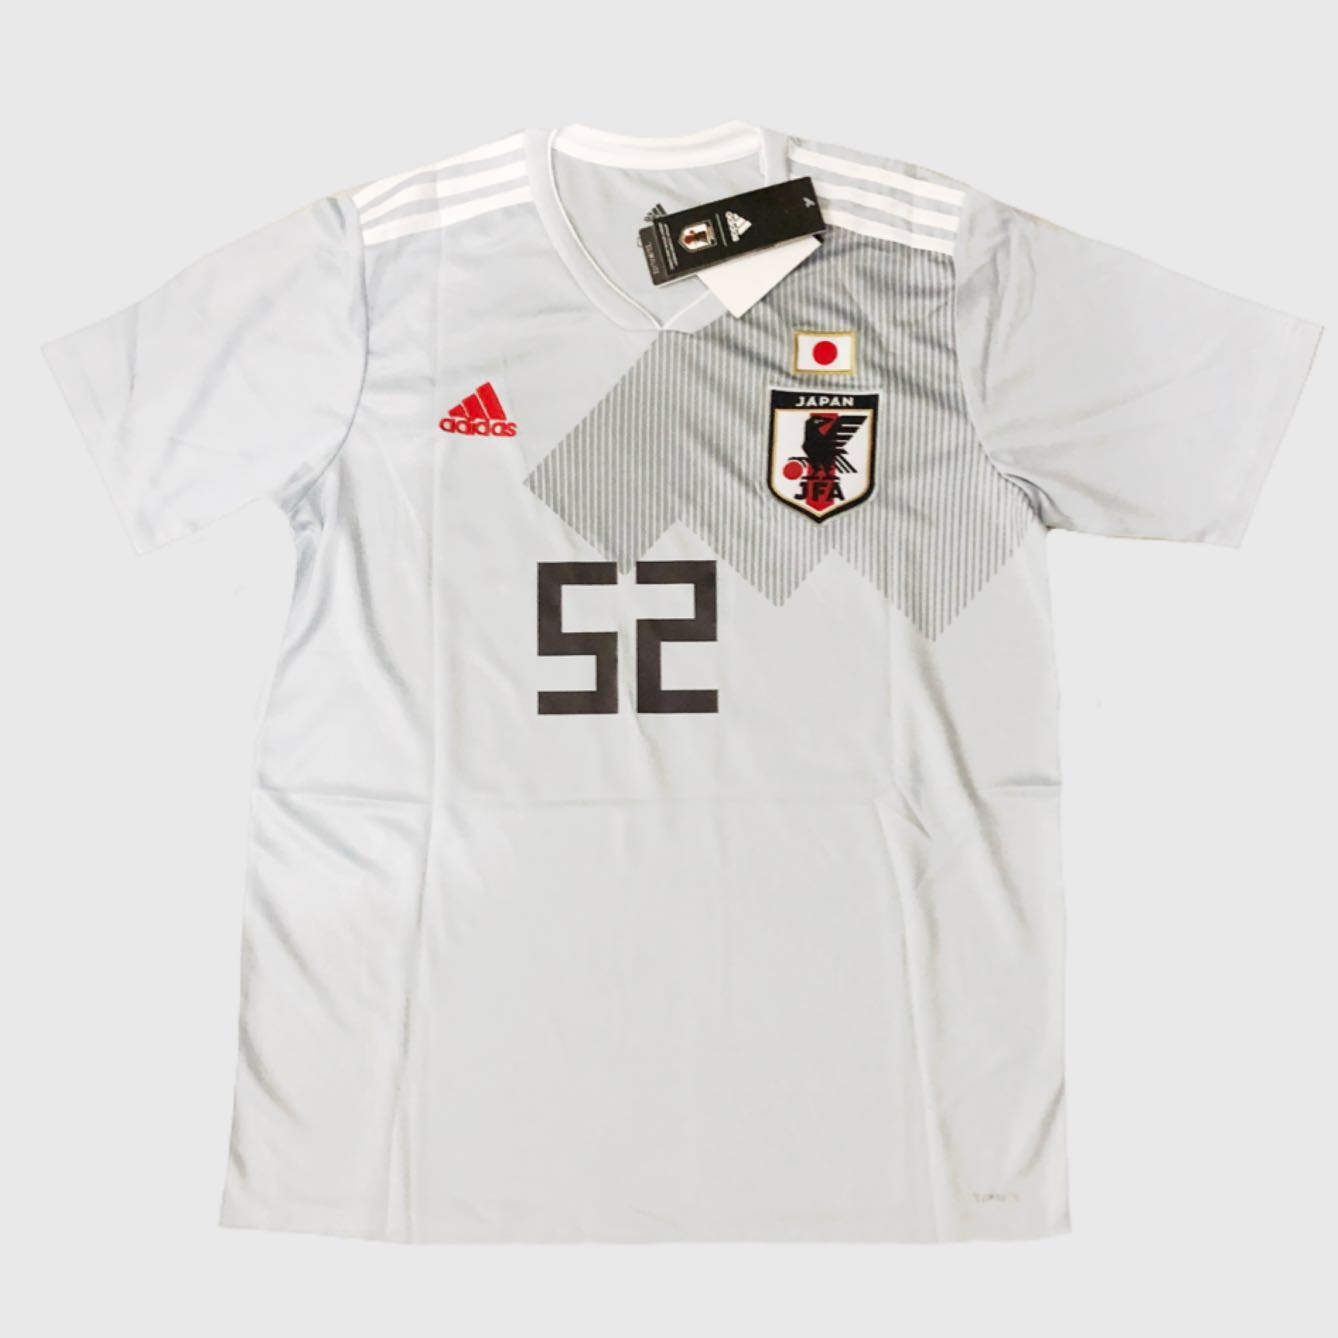 sports shoes f04f1 aa24d ❗️SALE❗️Japan 2018 World Cup Home/Away Jersey, Sports ...